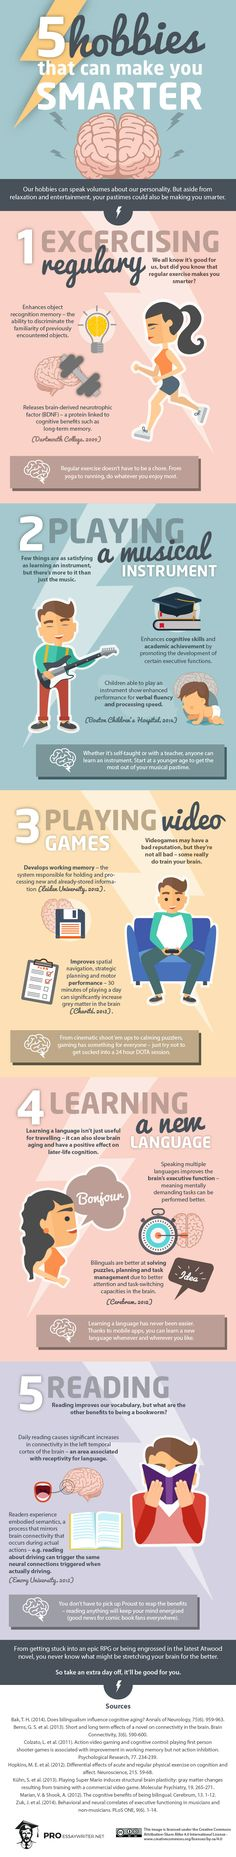 Exercising regularly, reading and video games can help increase your logic…